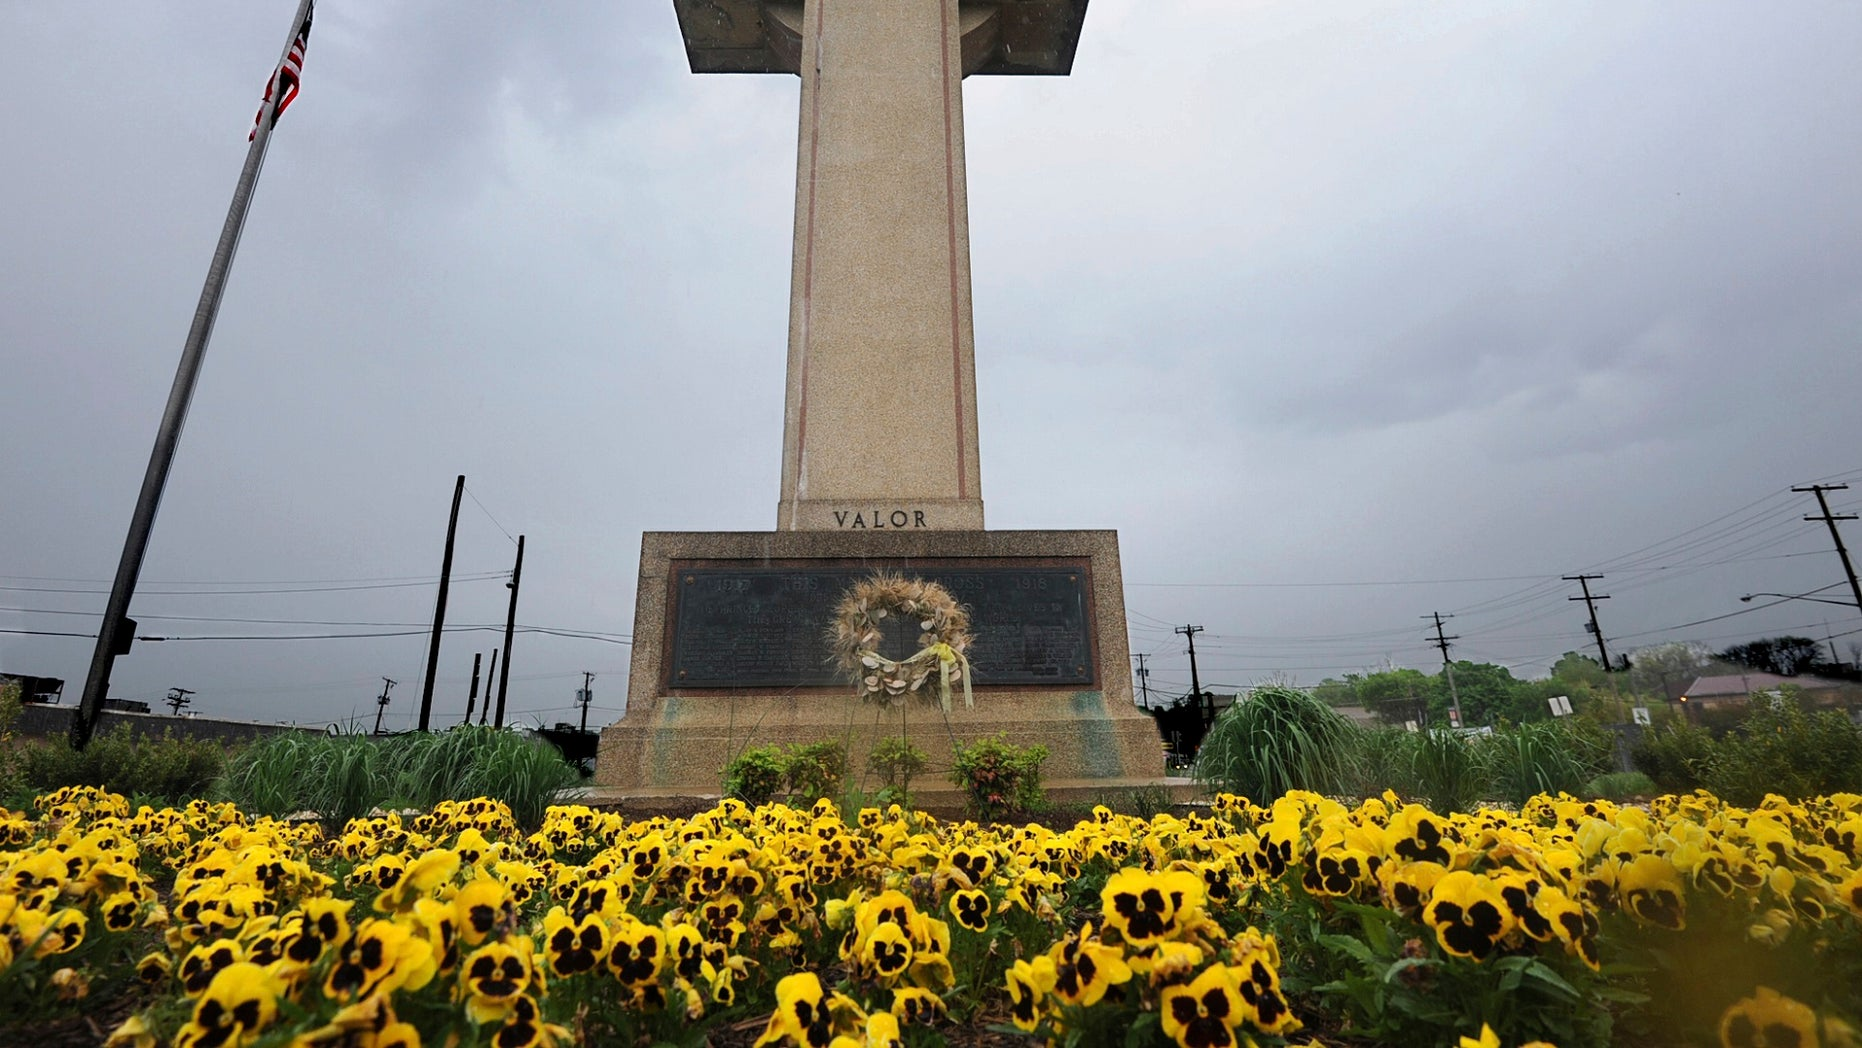 The case regarding whether or not a Maryland war memorial in the shape of a cross goes against the separation of church and state was accepted for final review by Supreme Court justices on Friday. (Algerina Perna /The Baltimore Sun via AP, File)